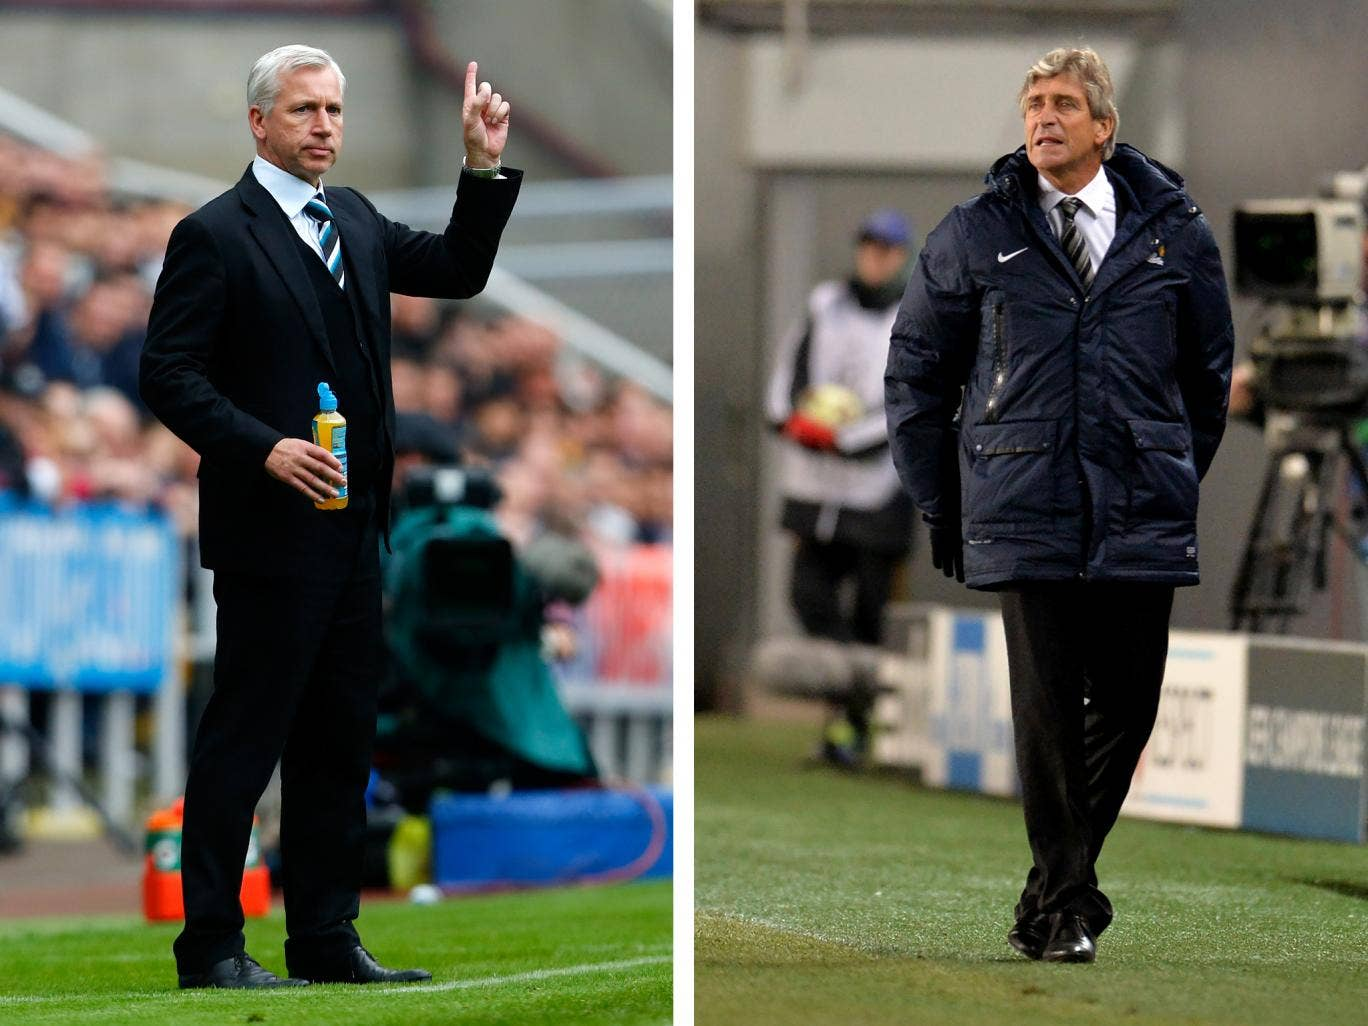 Newcastle manager Alan Pardew and Manchester City's Manuel Pellegrini will go head-to-head in the League Cup